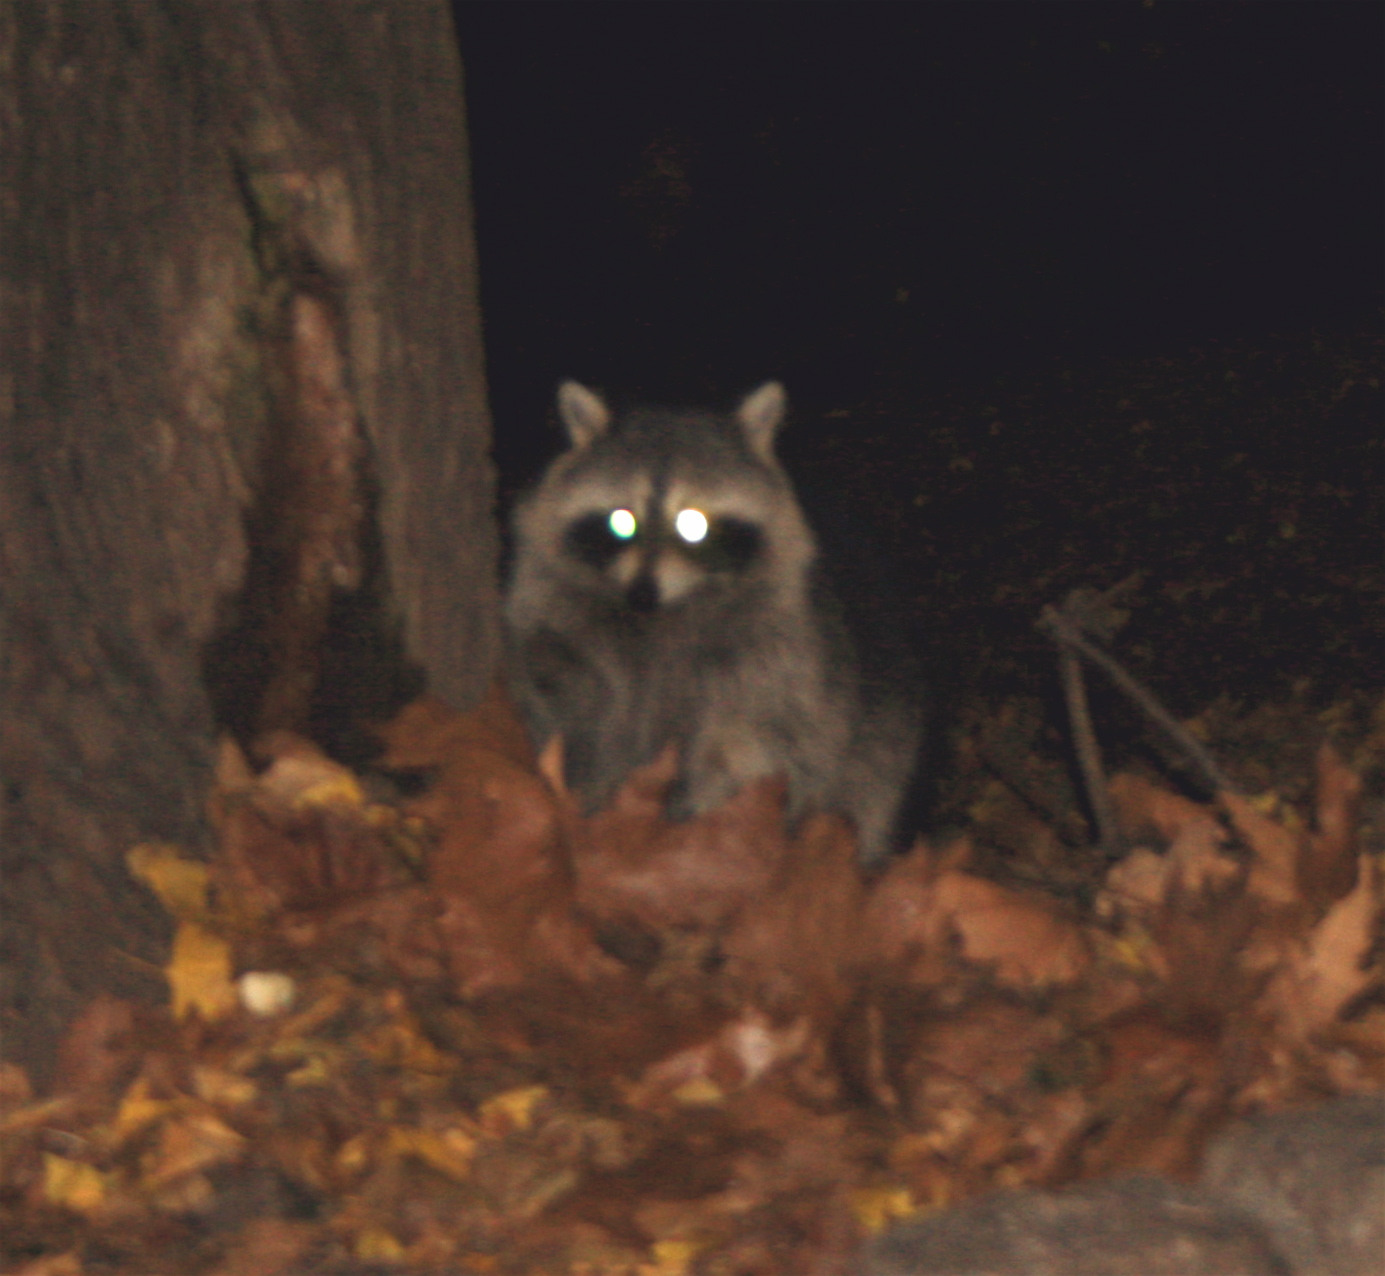 nyc raccoons out walking the dog